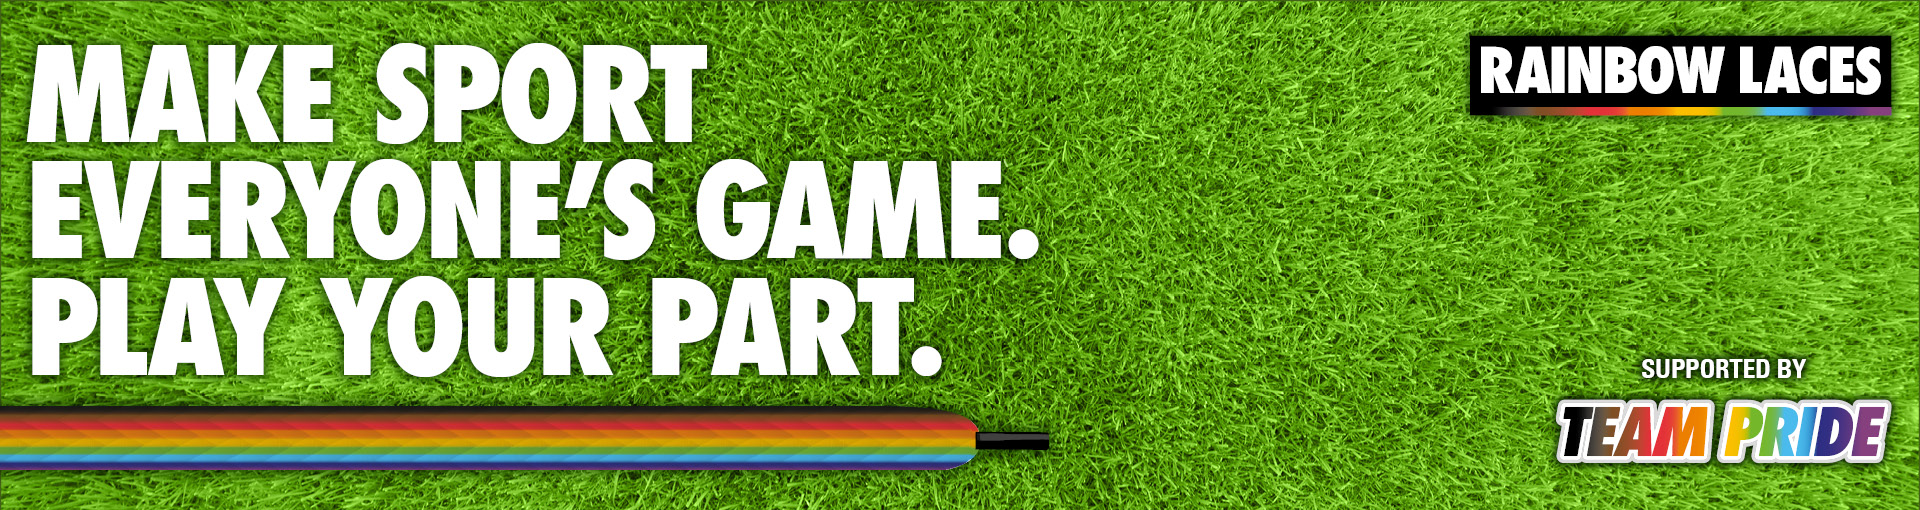 Text saying Make Sport Everyone's Game on a grass background with rainbow laces